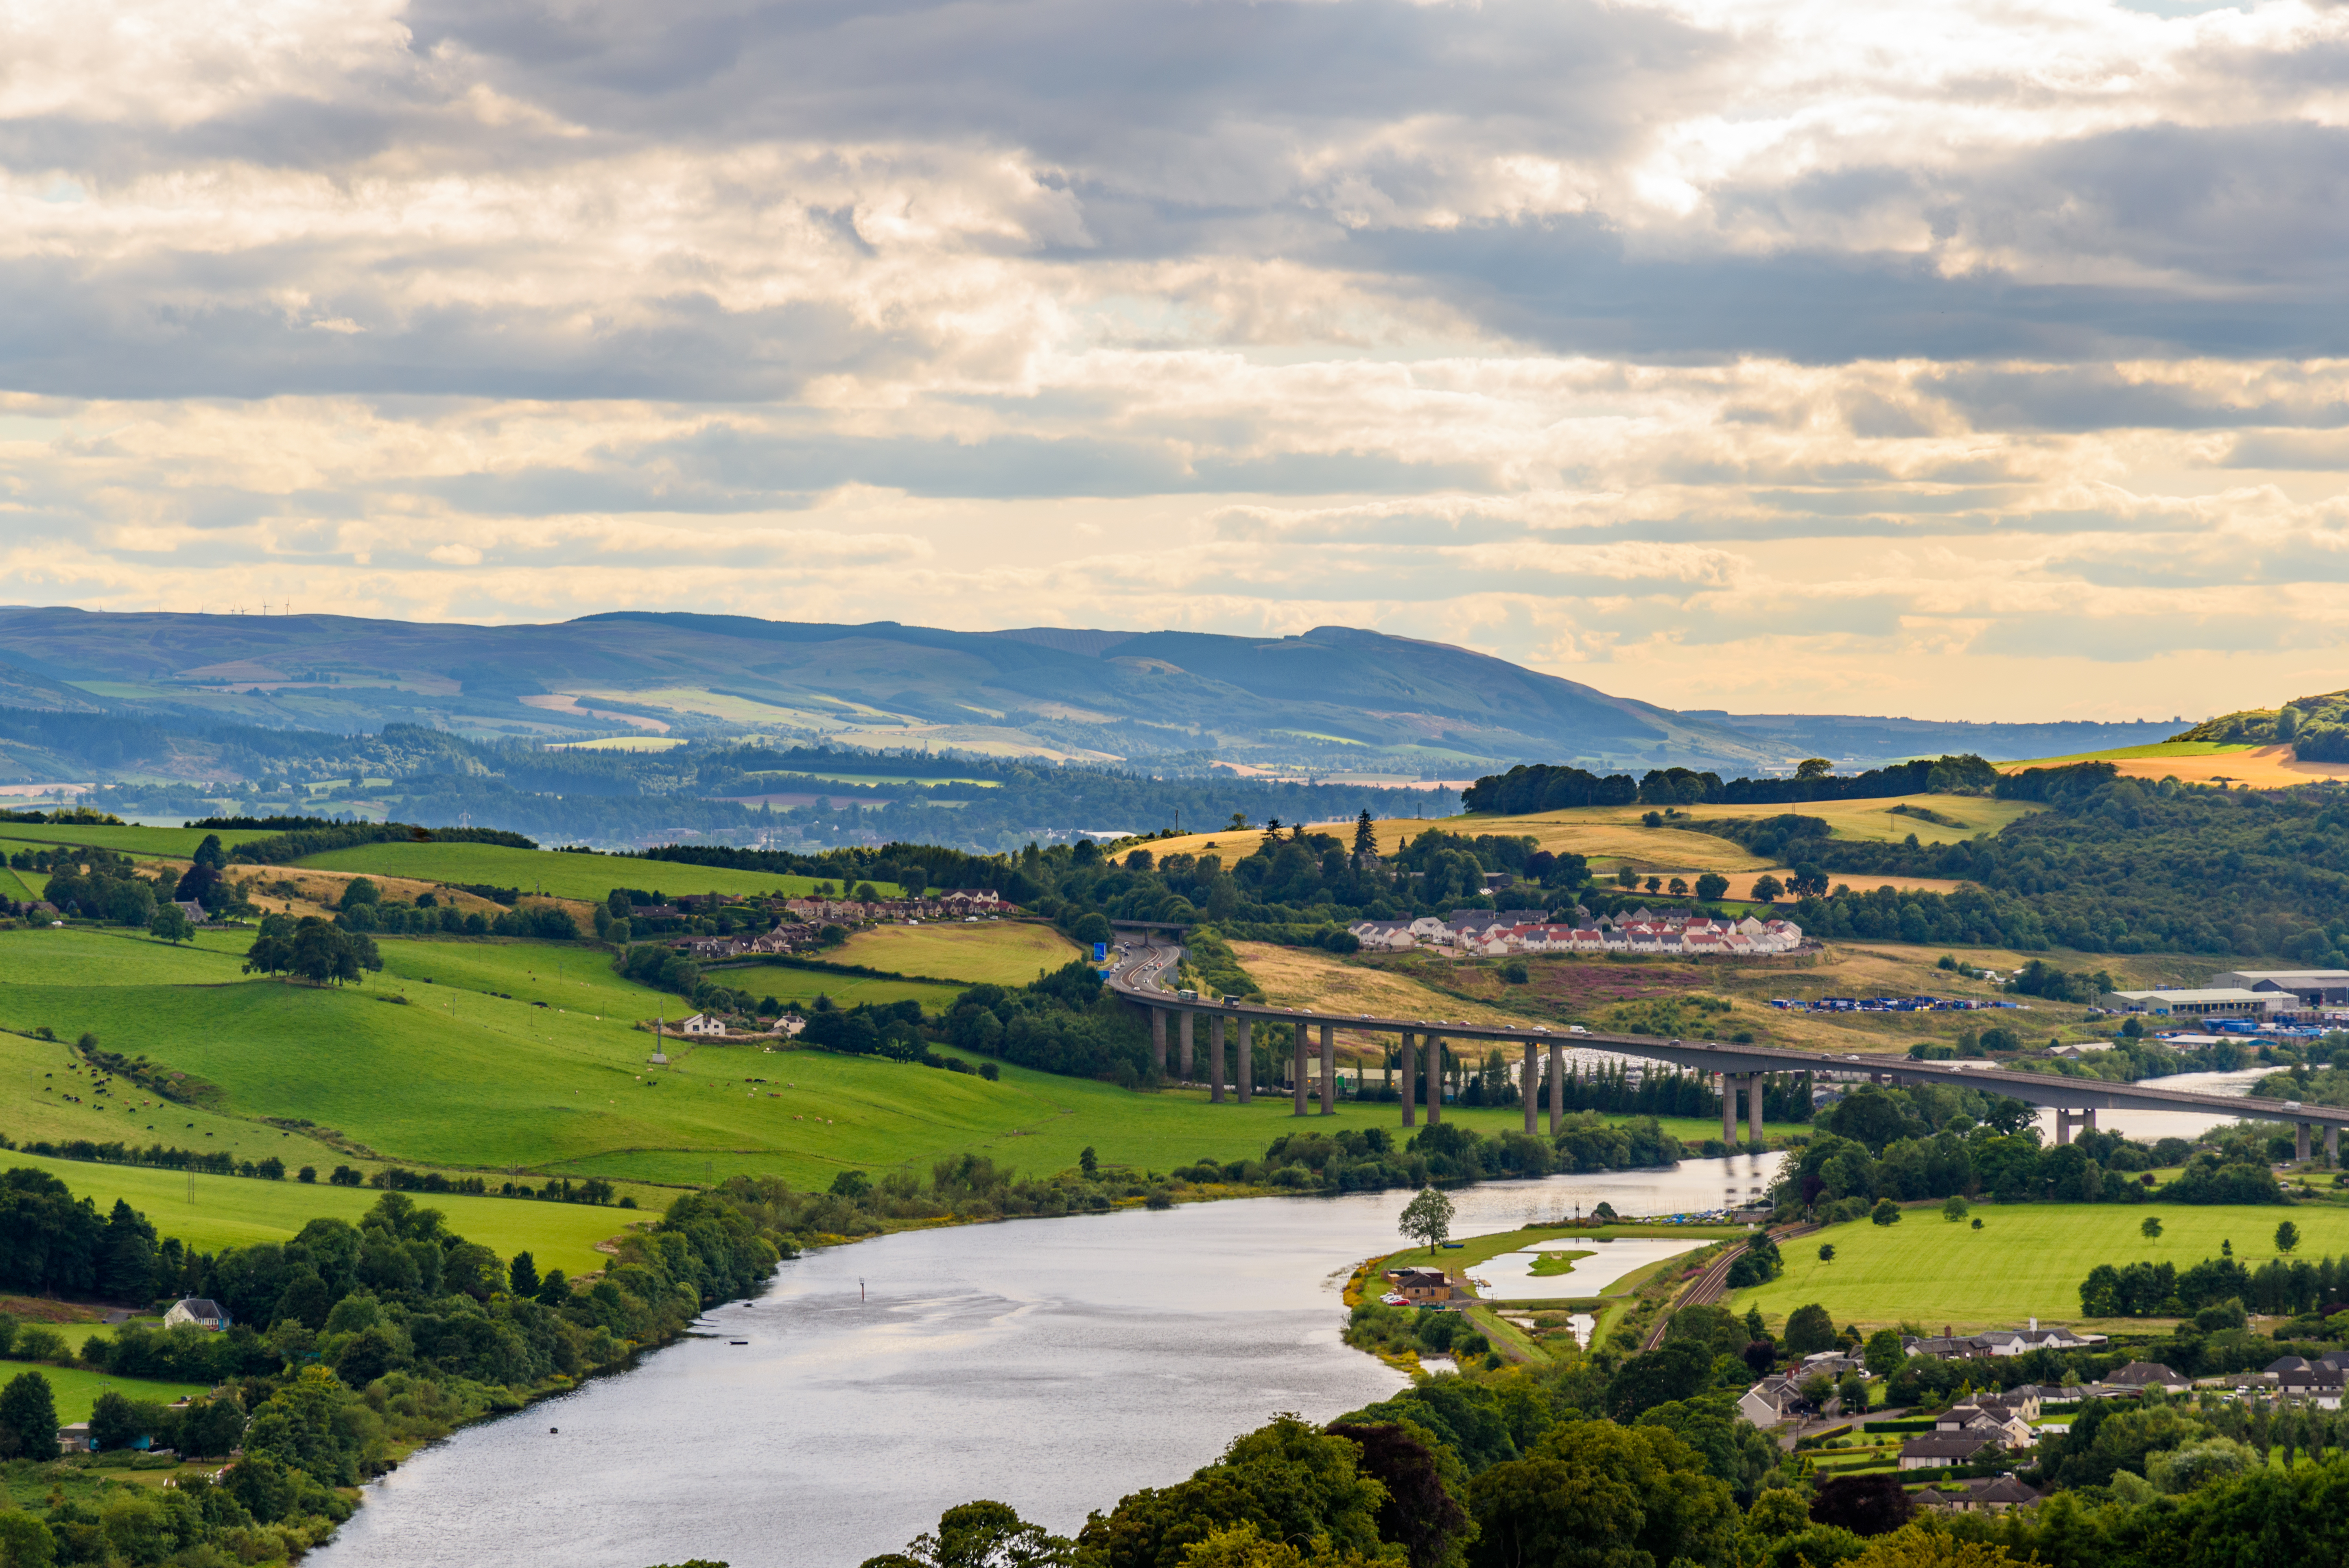 View of hills, fields, a large road and a wide river near Perth in Scotland